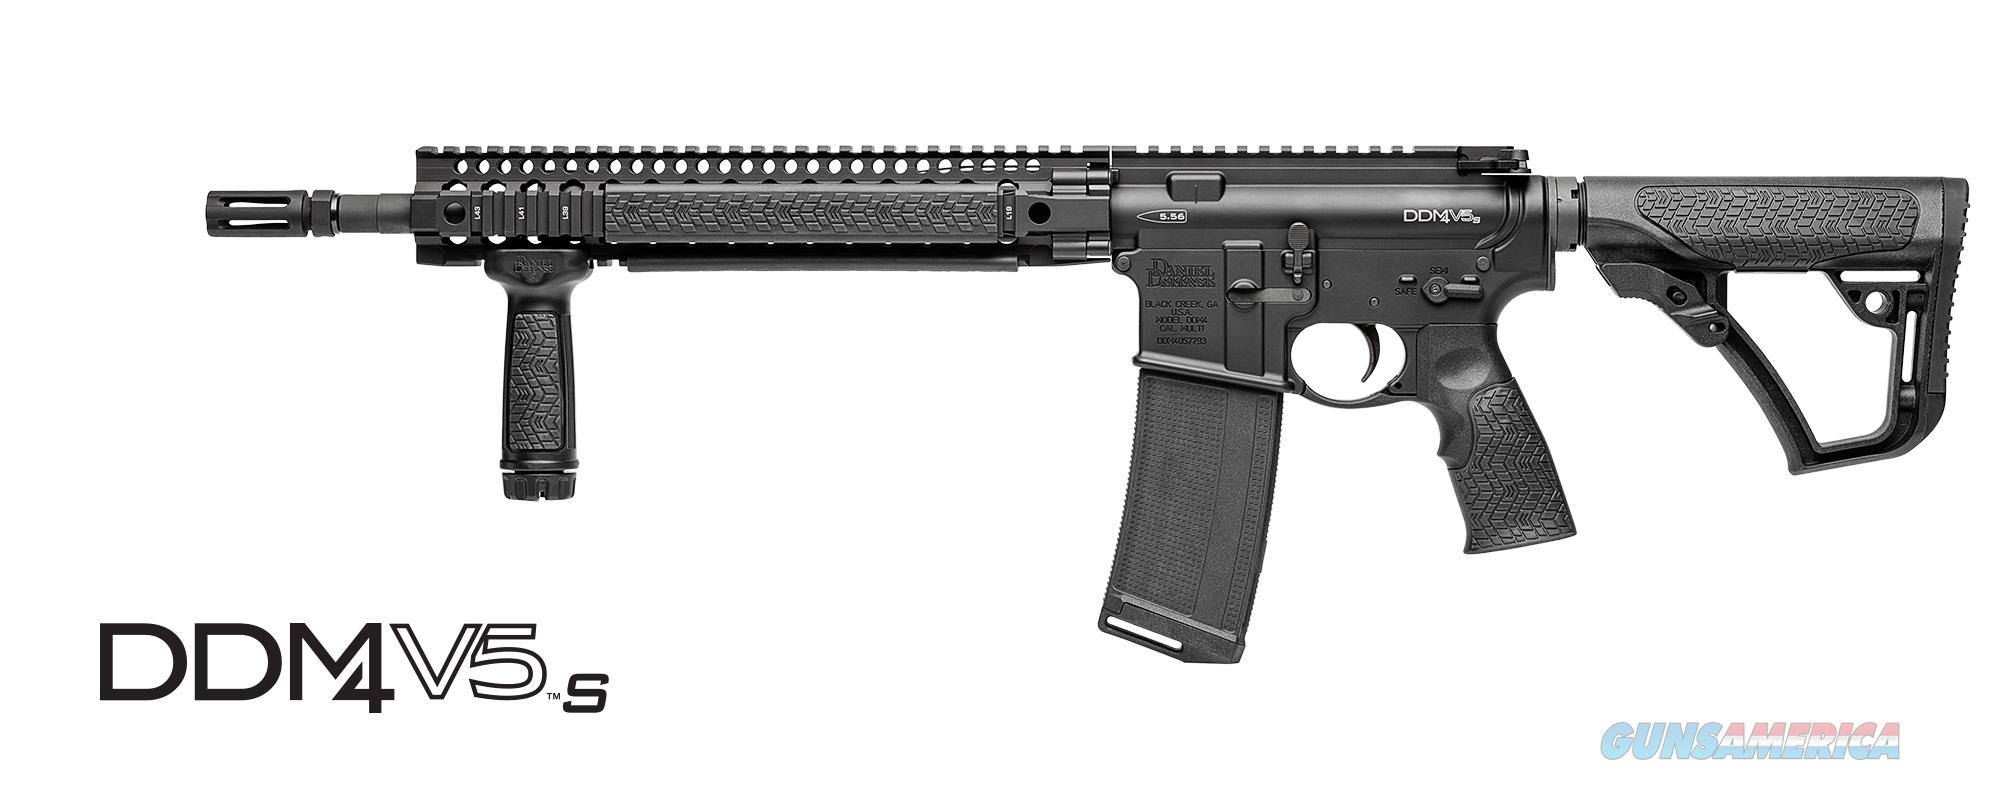 Daniel Defense 02-123-02049-067 DDM4V5 S Semi Auto Rifle 14.5'' Barrel No Magazine LAYAWAY 60 DAYS SAME AS CASH!  Guns > Rifles > Daniel Defense > Complete Rifles